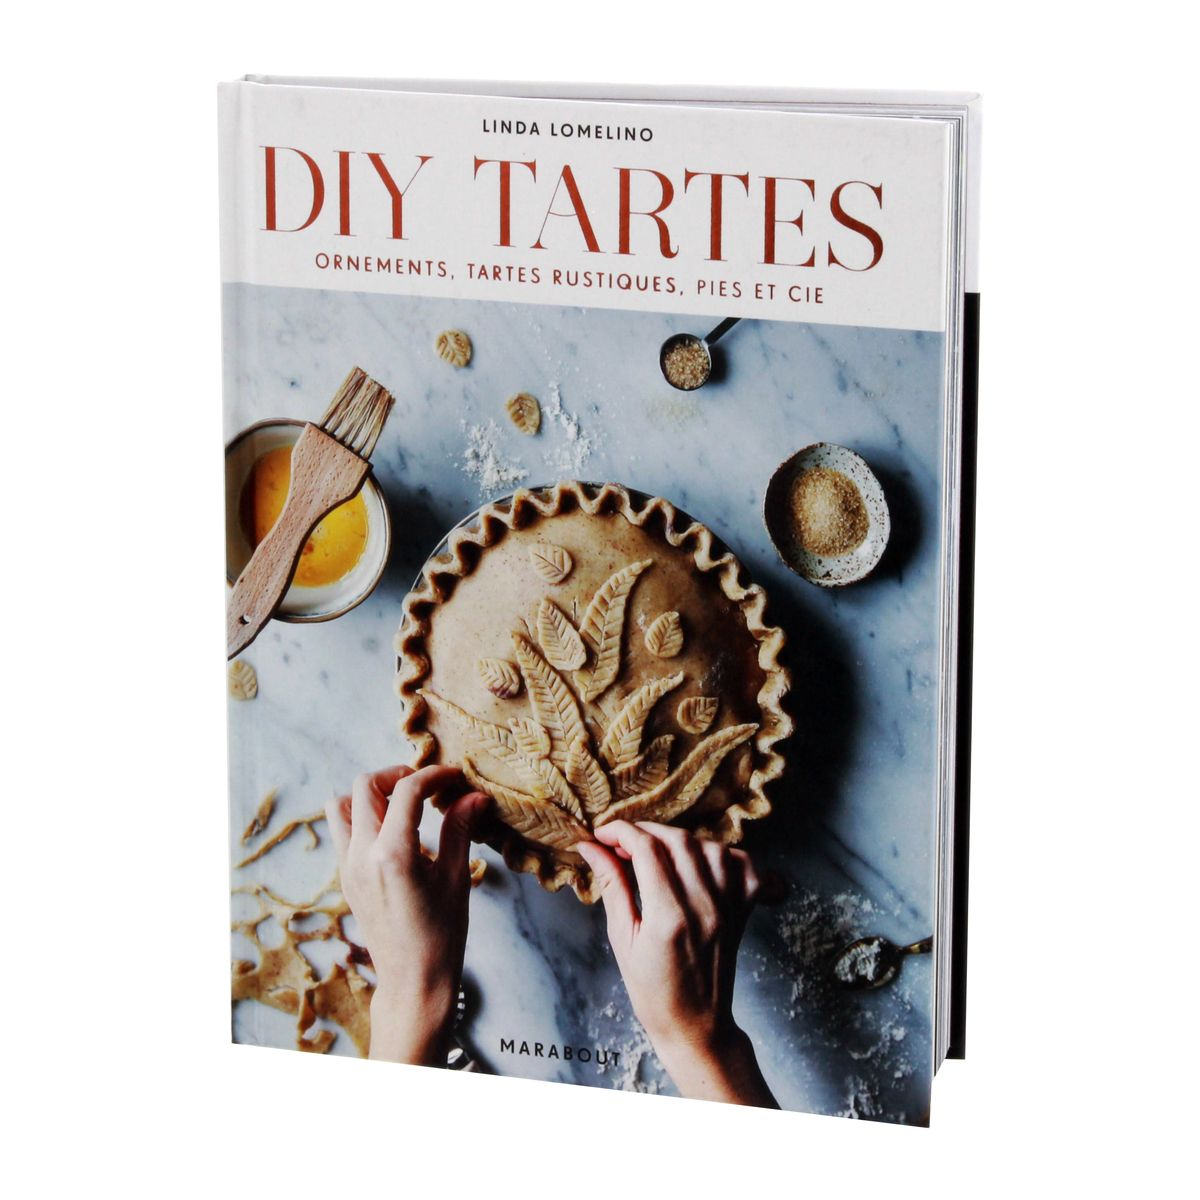 Tartes do it yourself - Marabout